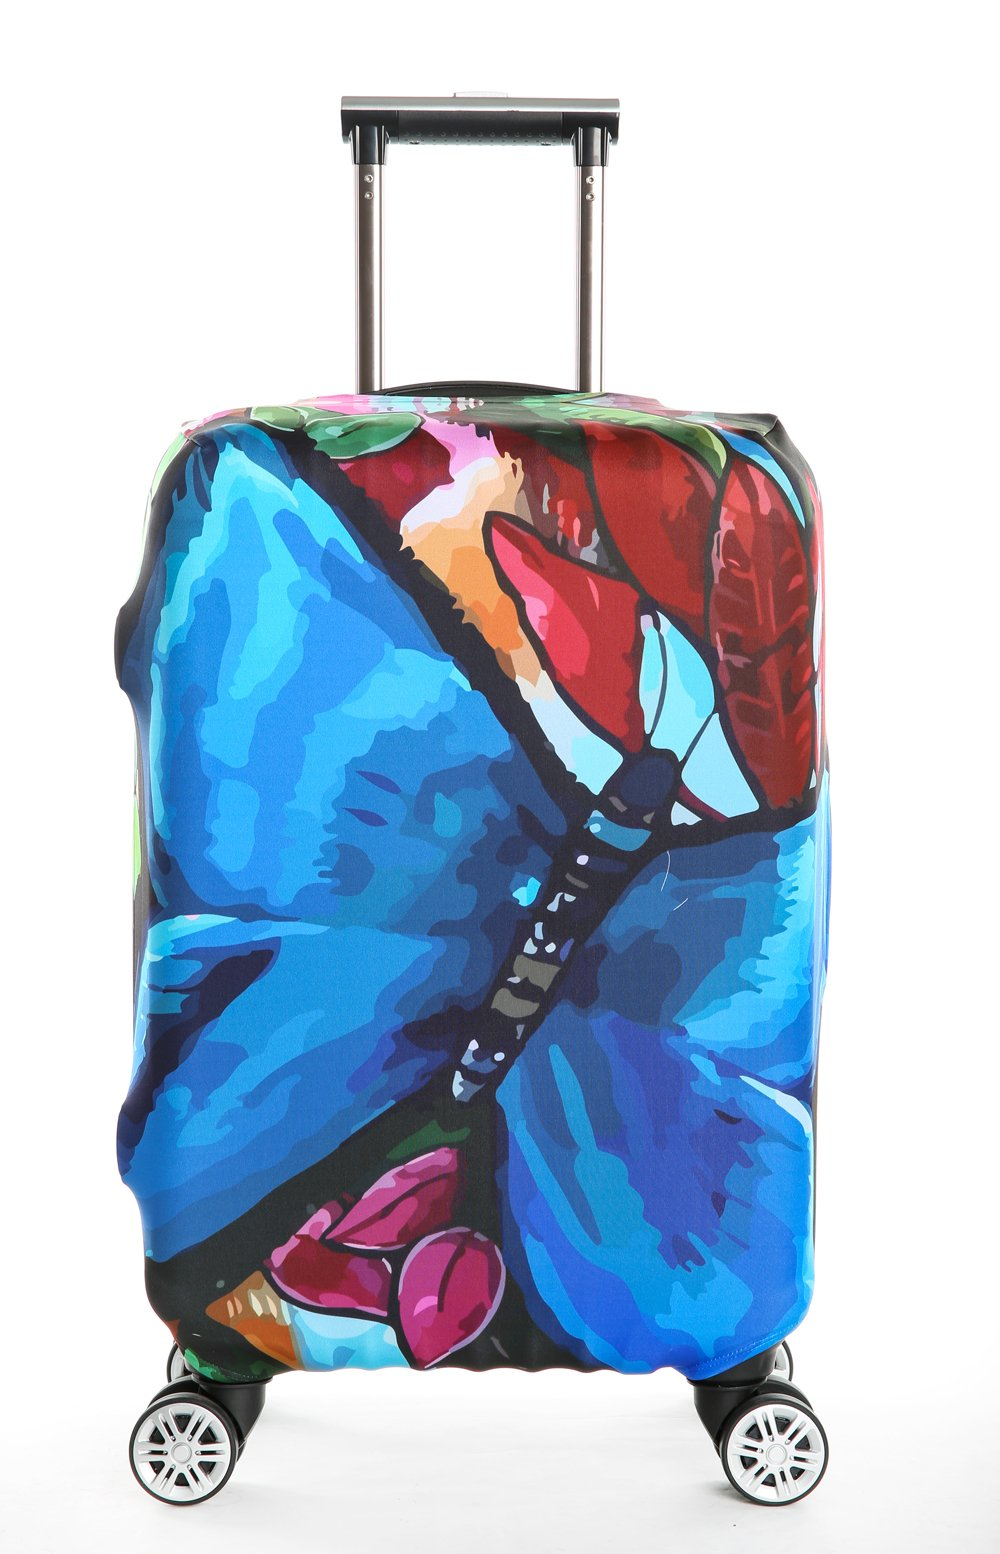 SINOKAL Luggage Covers DESIGNS 18-20 22-24 26-28 30-32 Inch Creative Color Printed Luggage Covers Spandex Travel Suitcase Protective Cover for Woman and Men